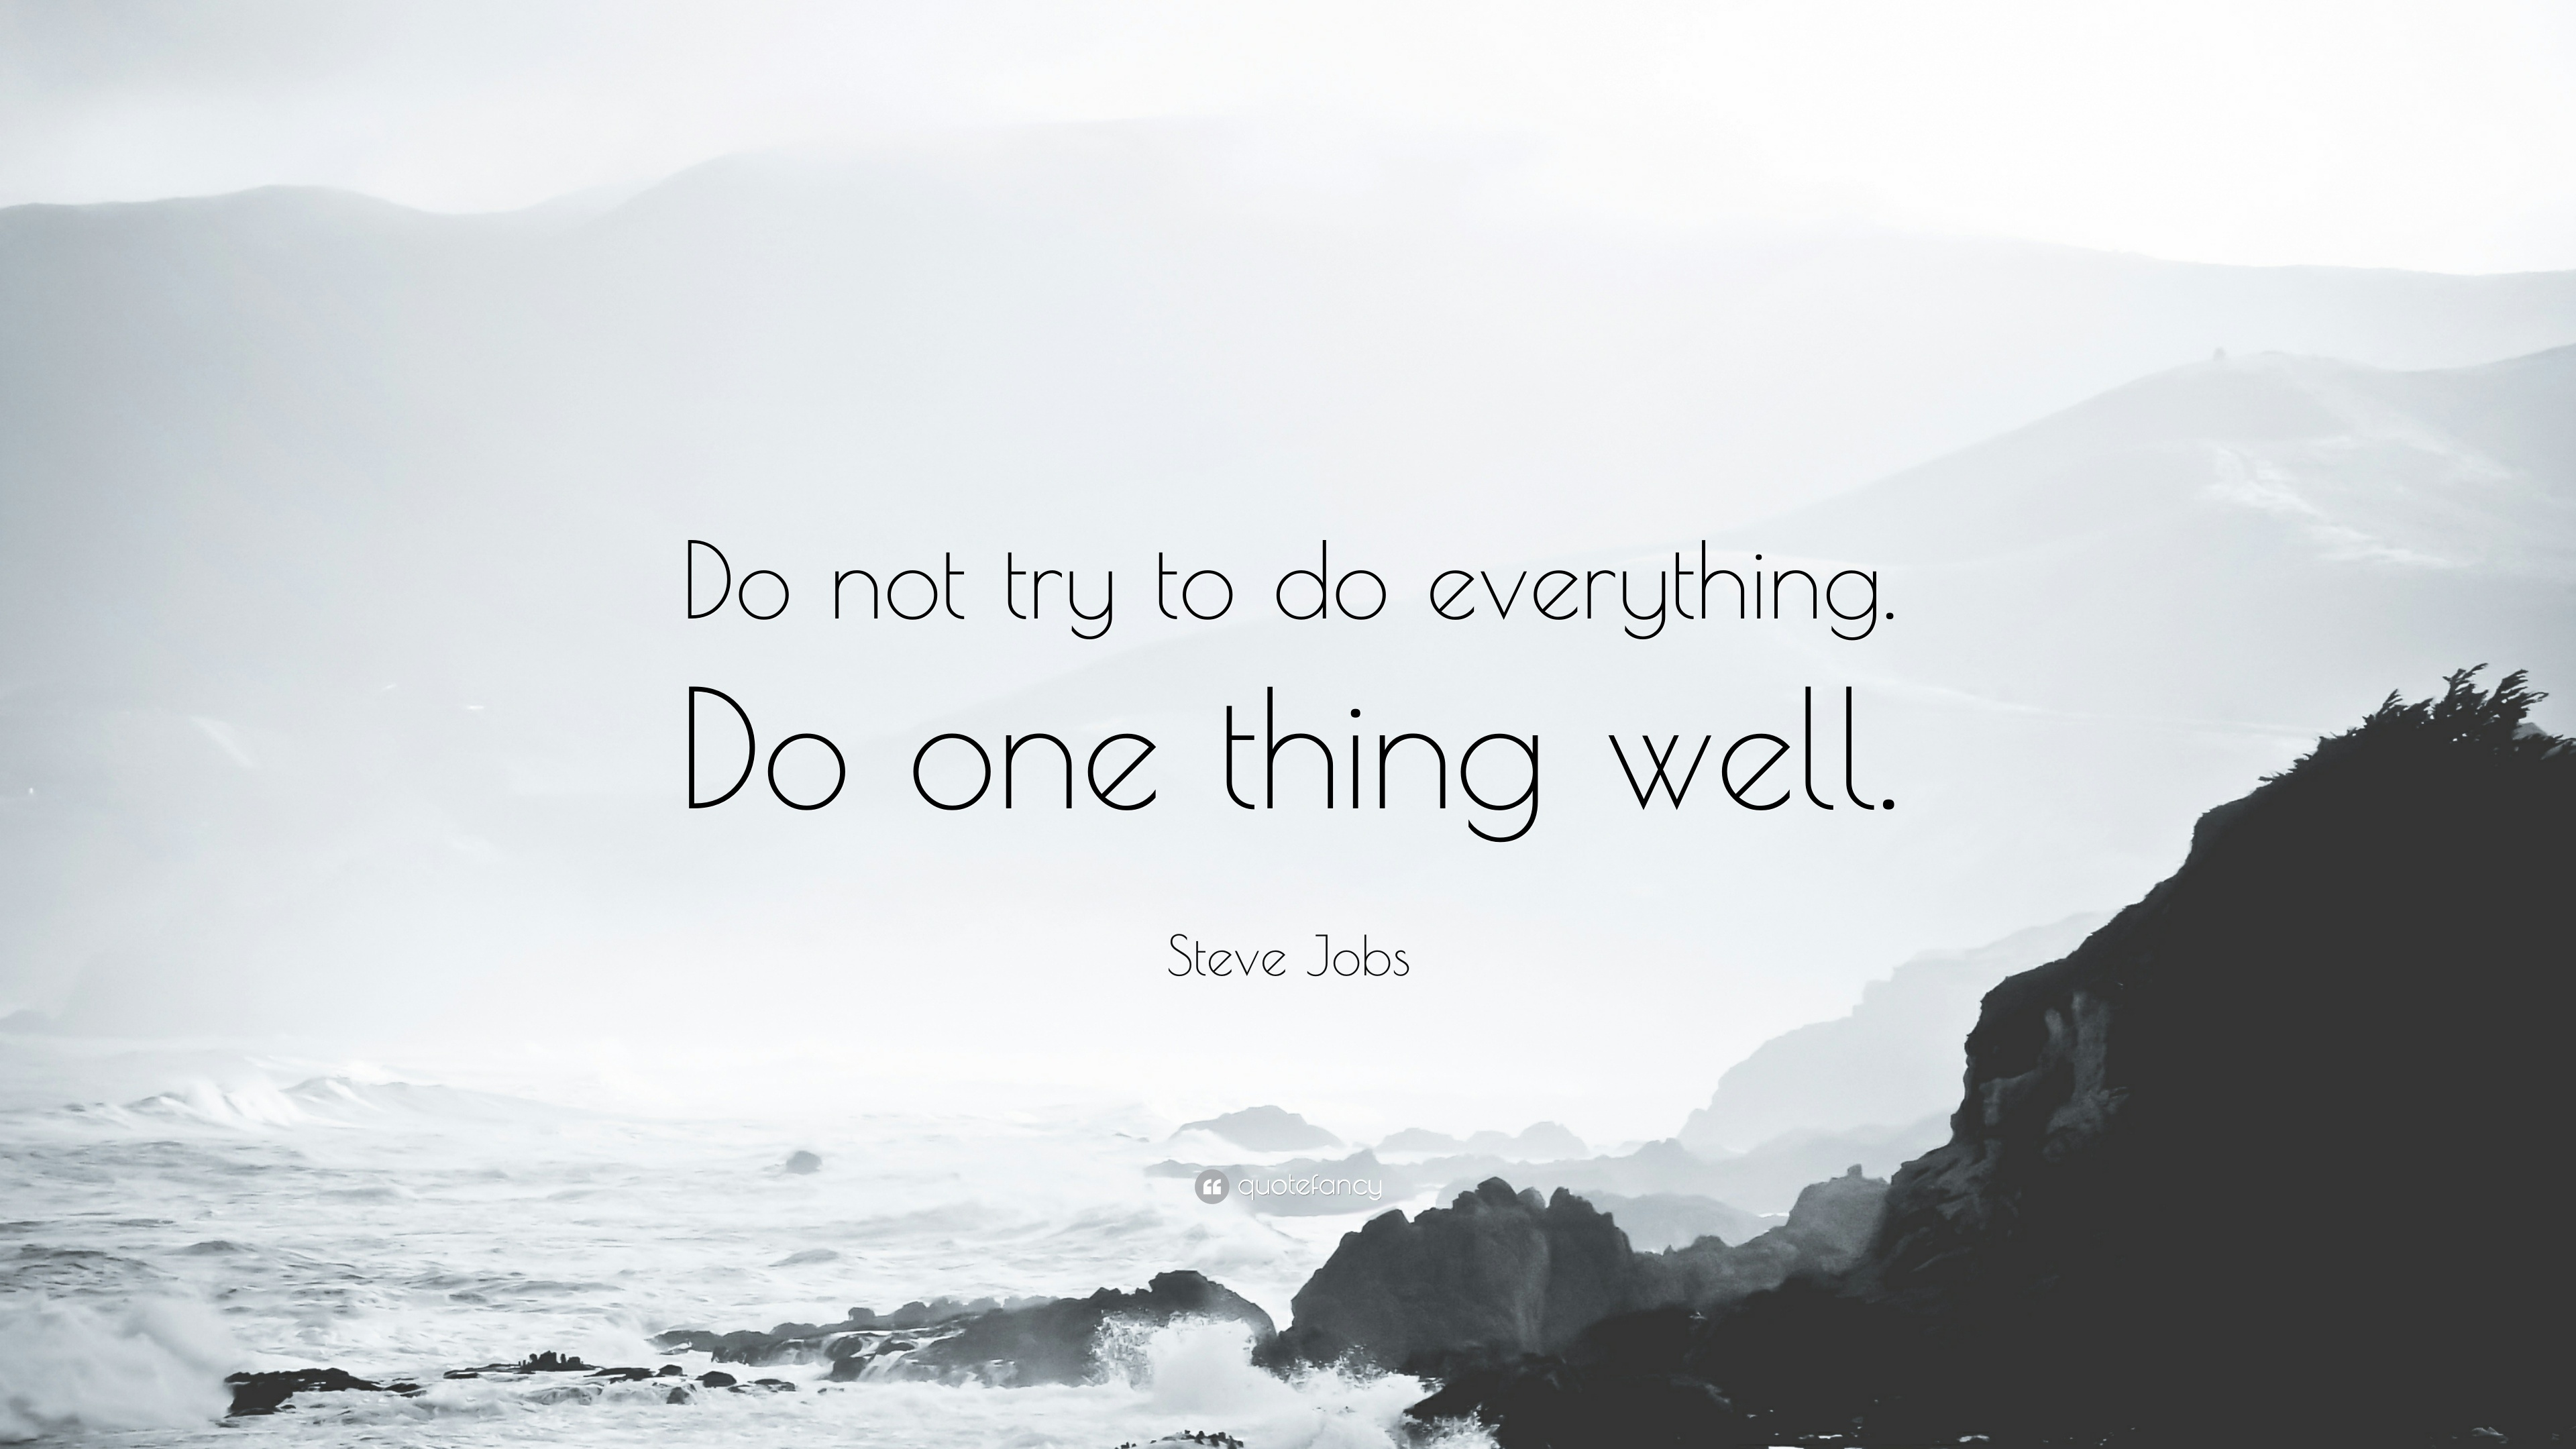 Steve-Jobs-Quote-Do-not-try-to-do-everything-Do-one-thing-well